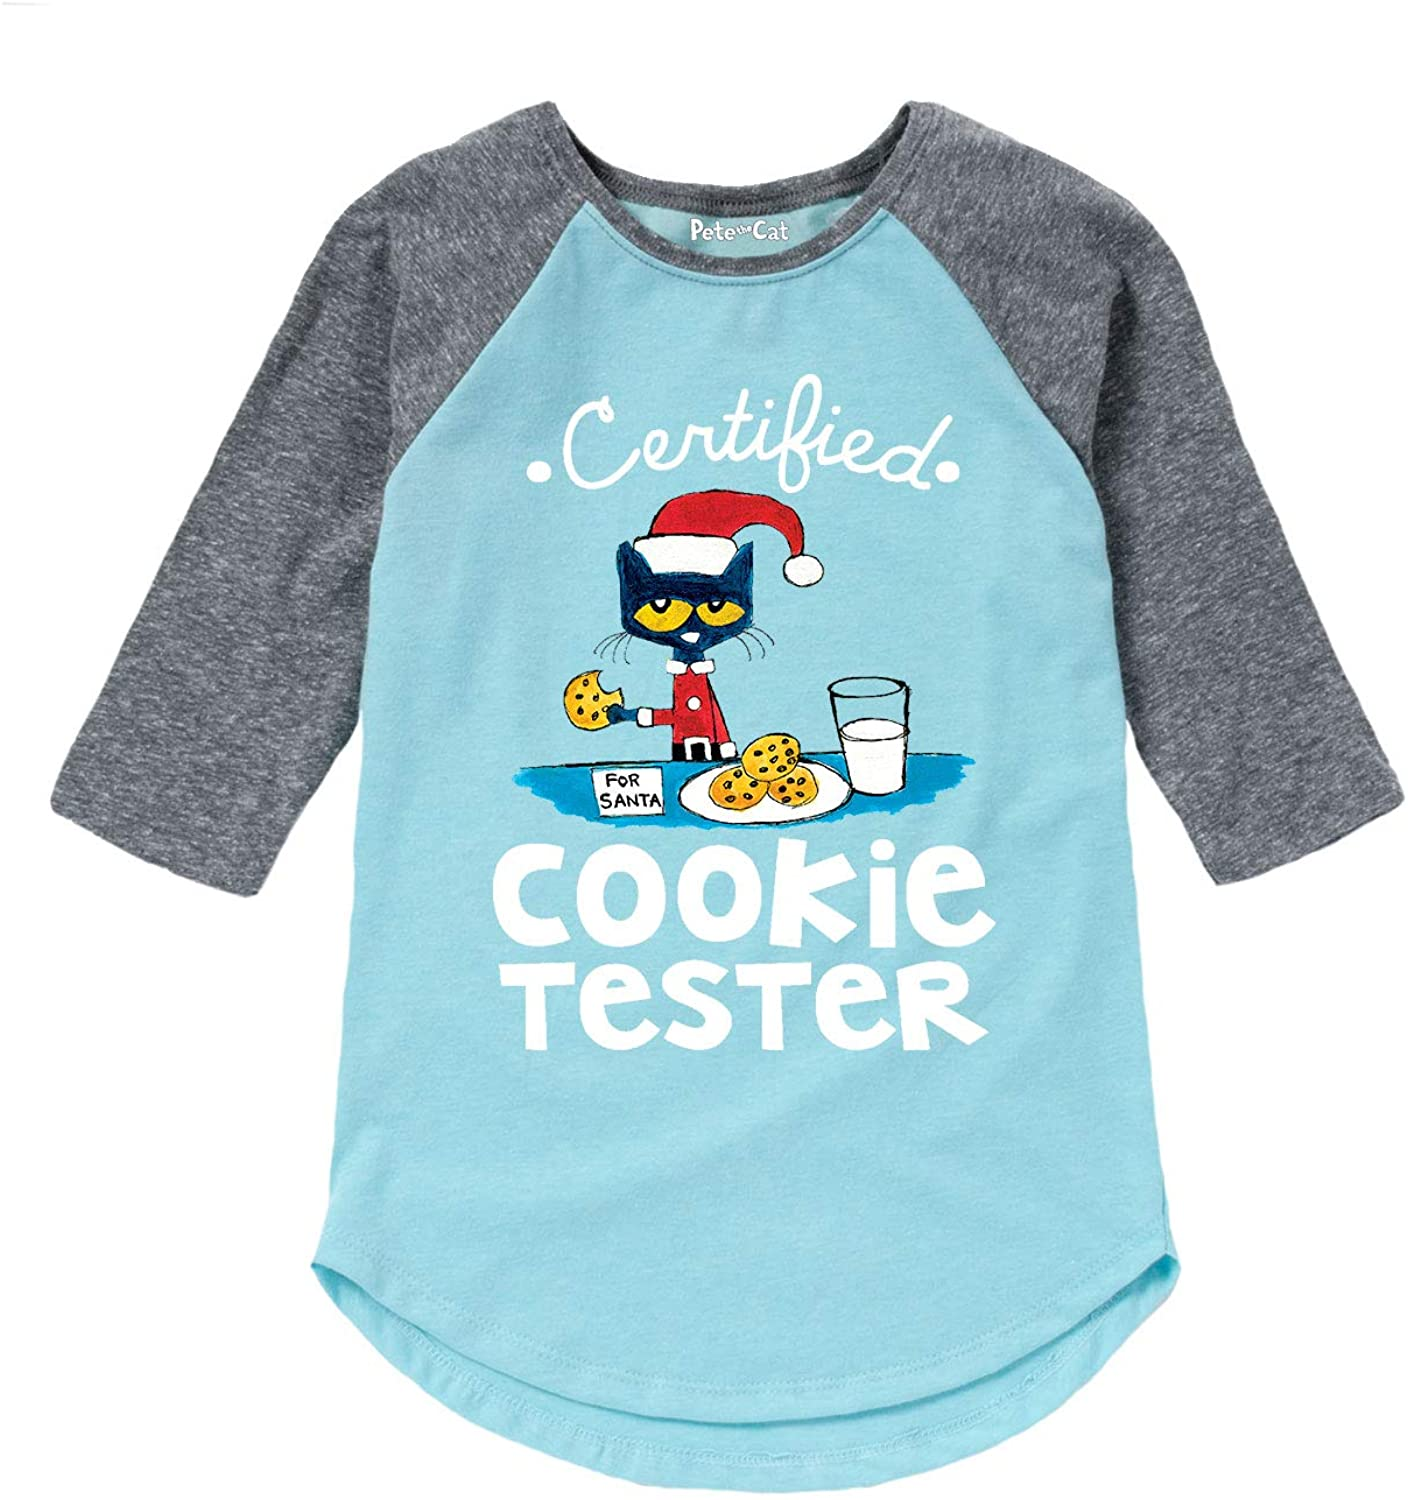 Pete The Cat Certified Cookie Tester - Youth Girl Shirt Tail Raglan